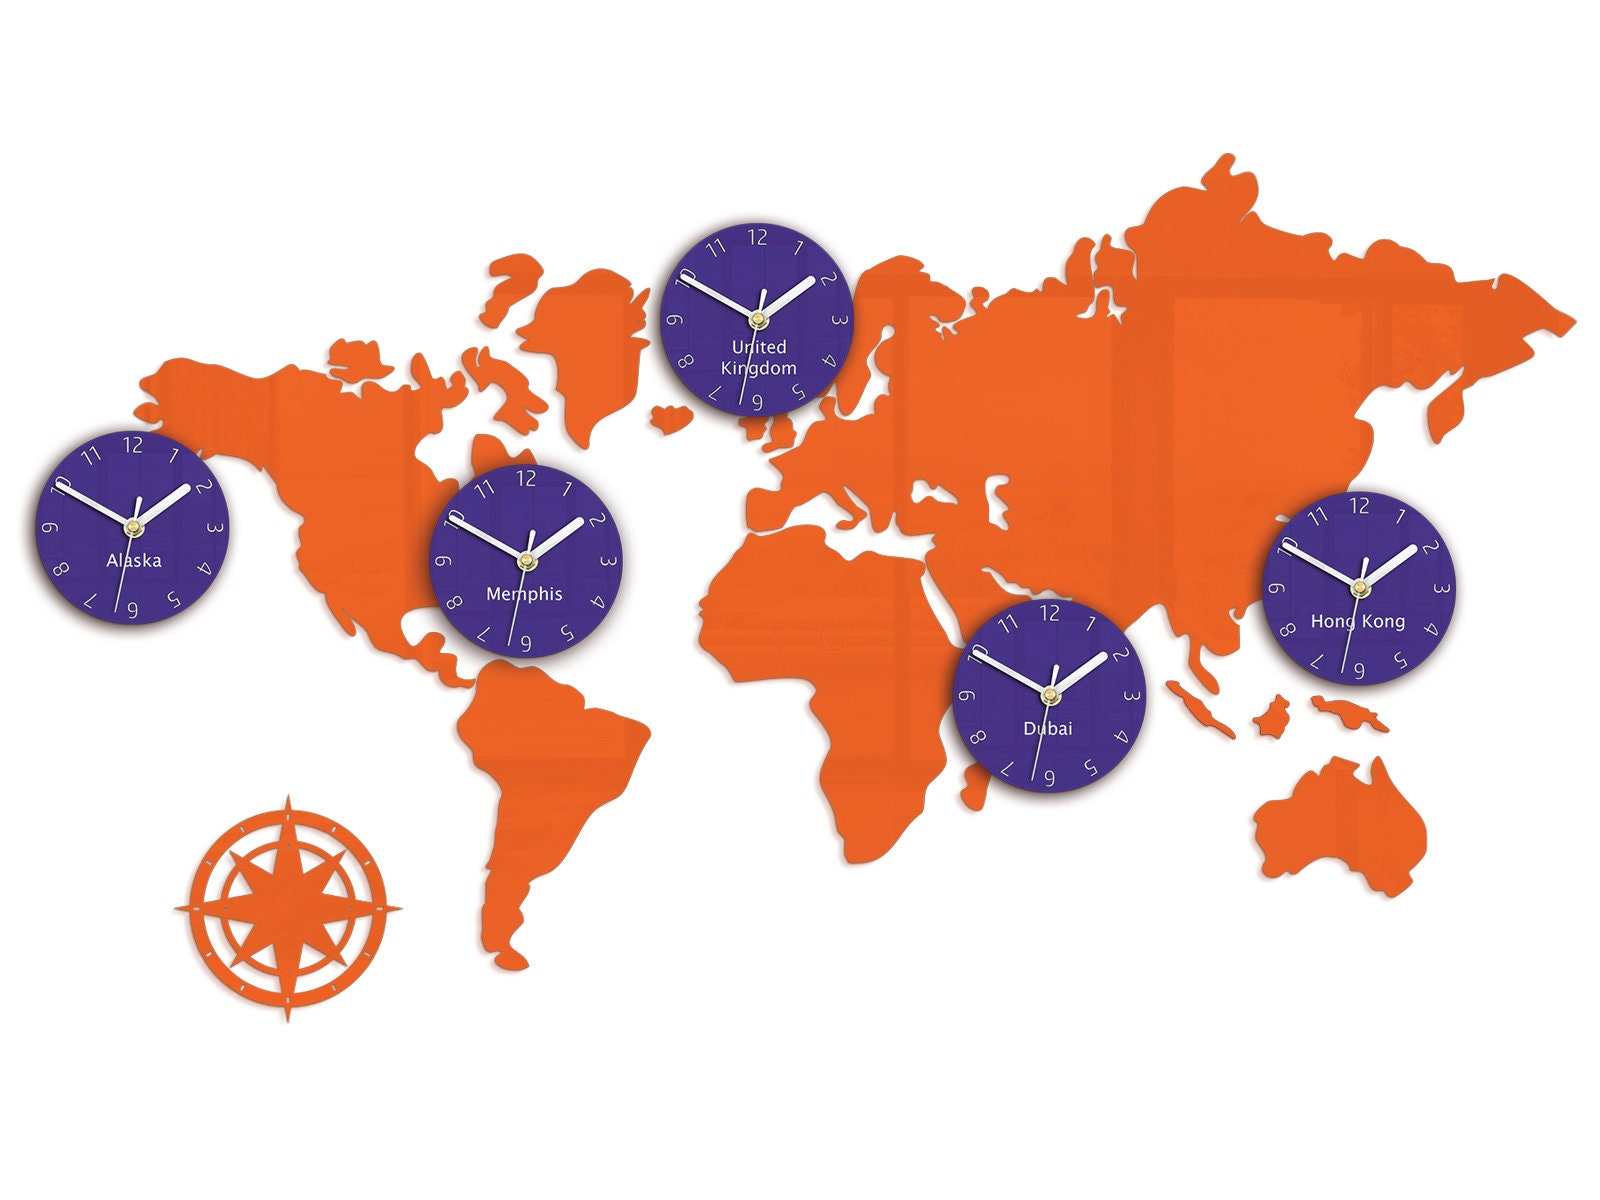 Map Of Uk Time Zones.Large Clock Orange World Map With 5 Time Zones Hong Kong Alaska